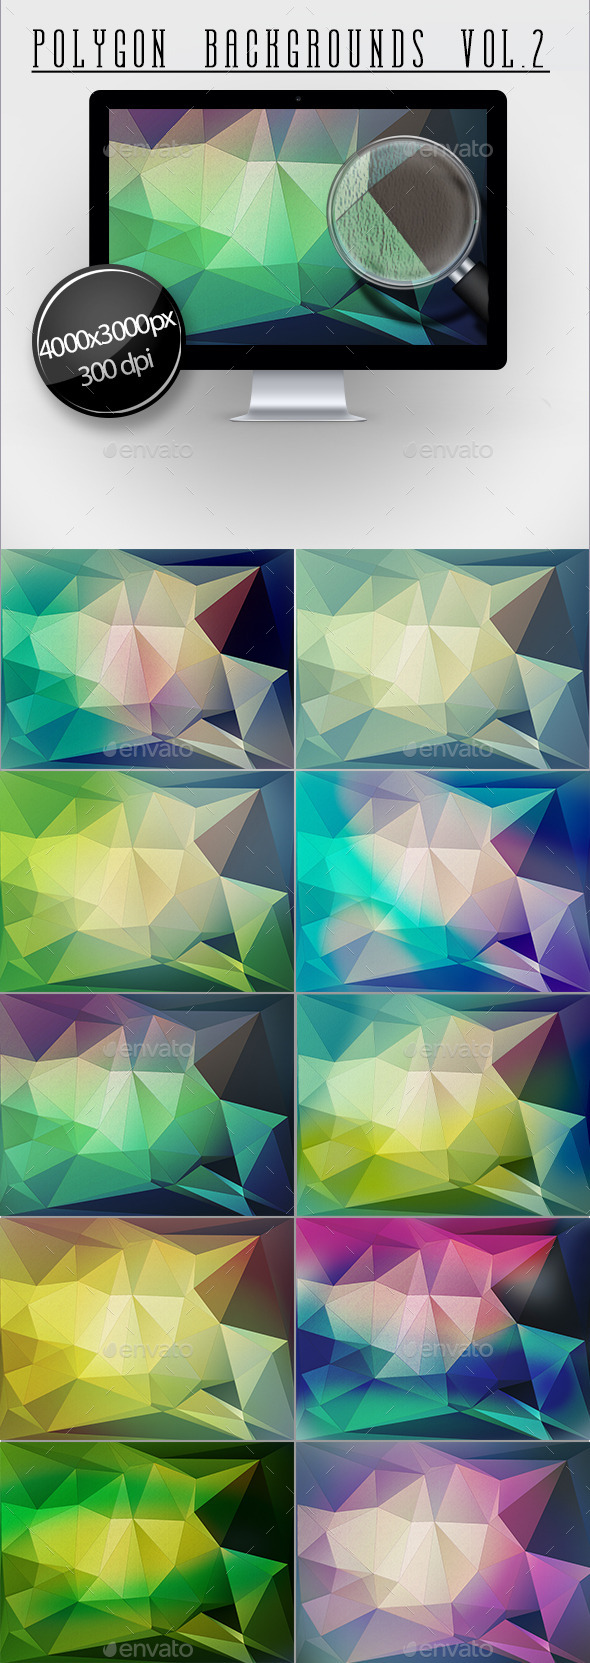 GraphicRiver Polygon Backgrounds Vol.2 11816757